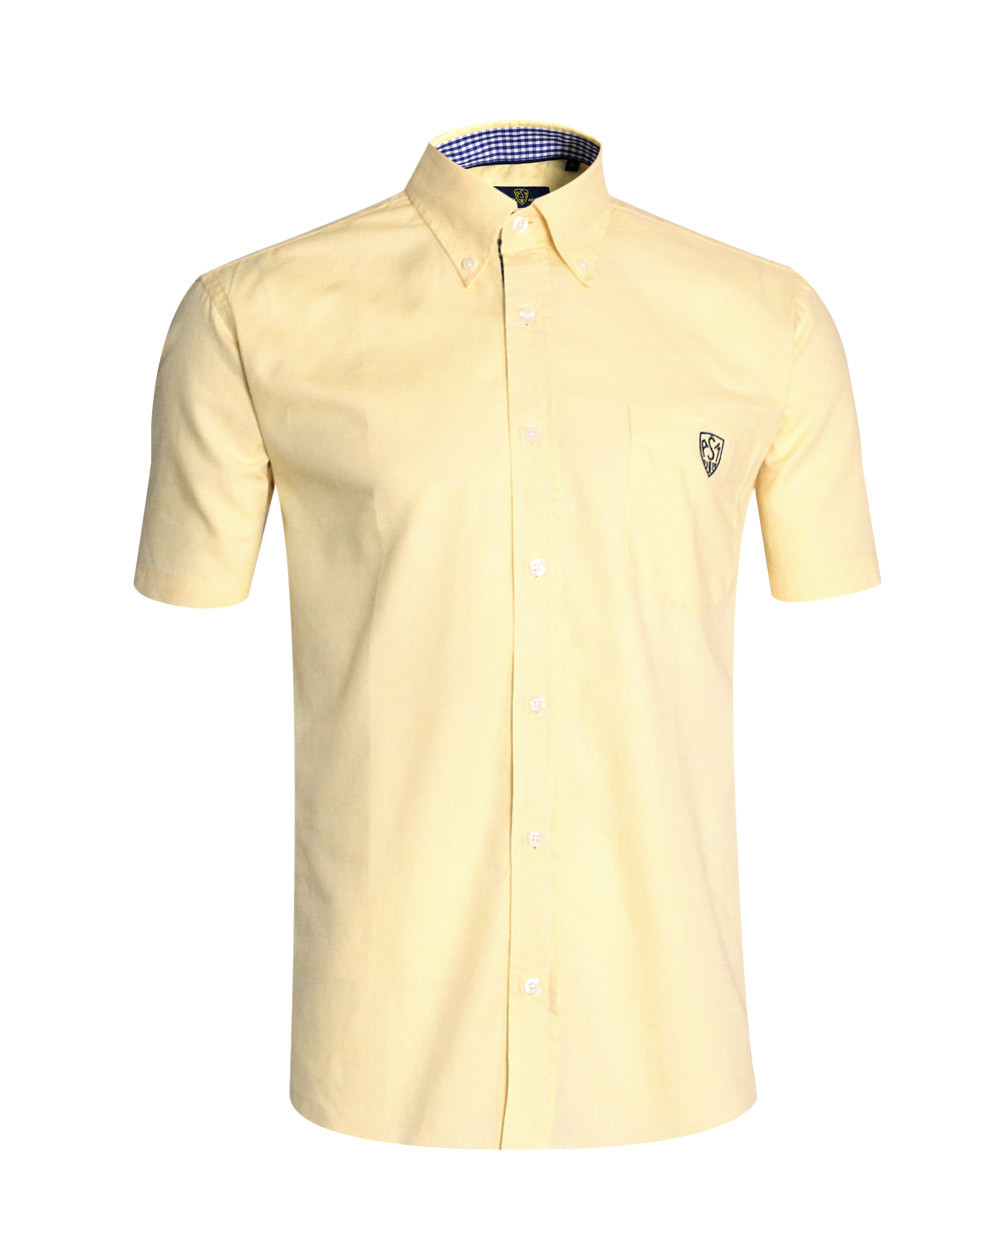 Chemise Oxford ASM manches courtes jaune clair homme